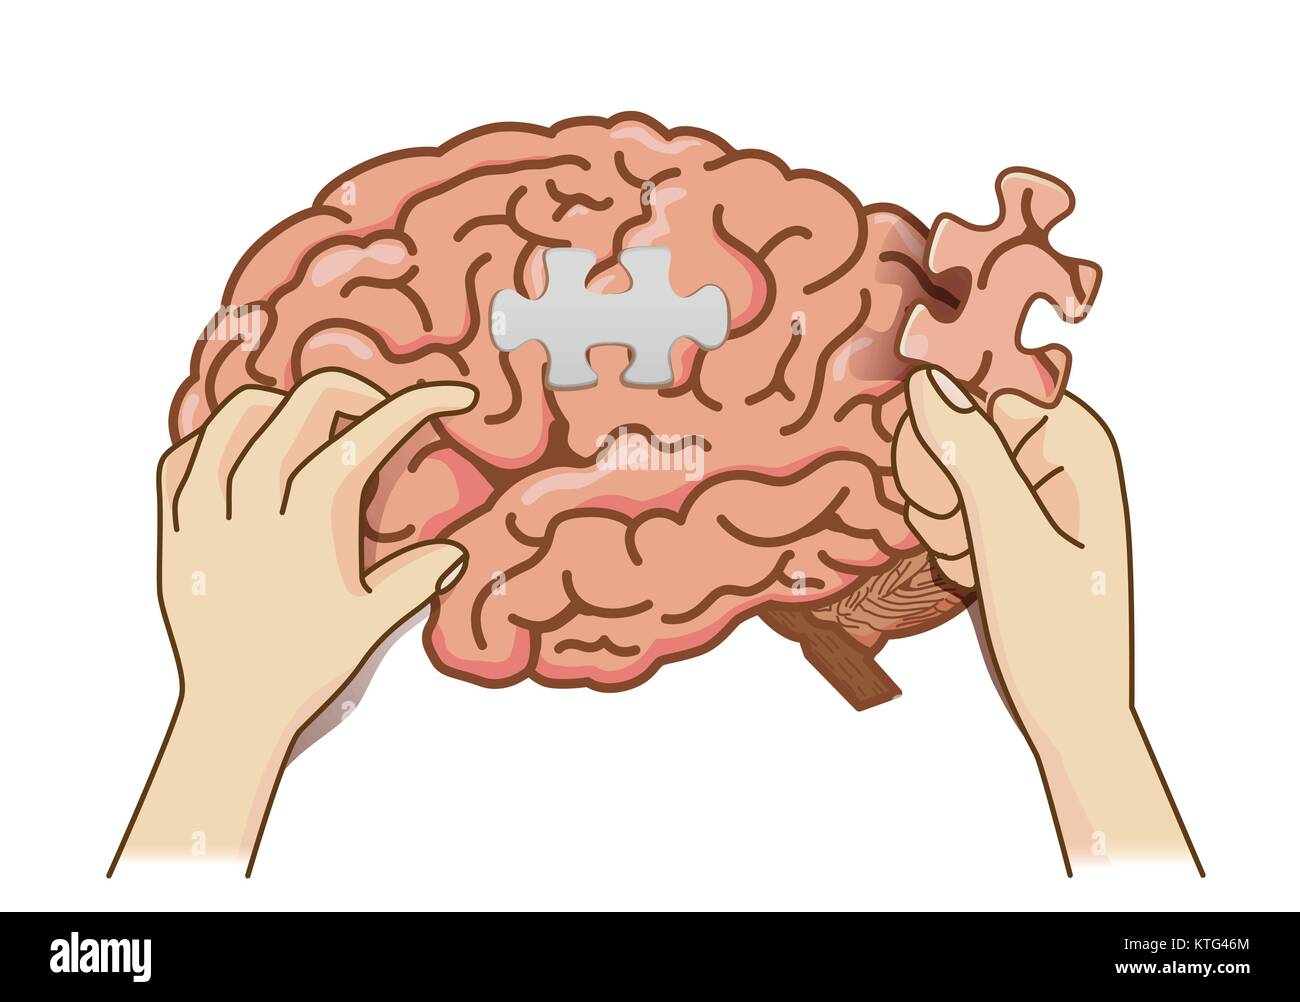 Hand Paste The Last Piece To Complete The Brain Puzzle Jigsaw Stock